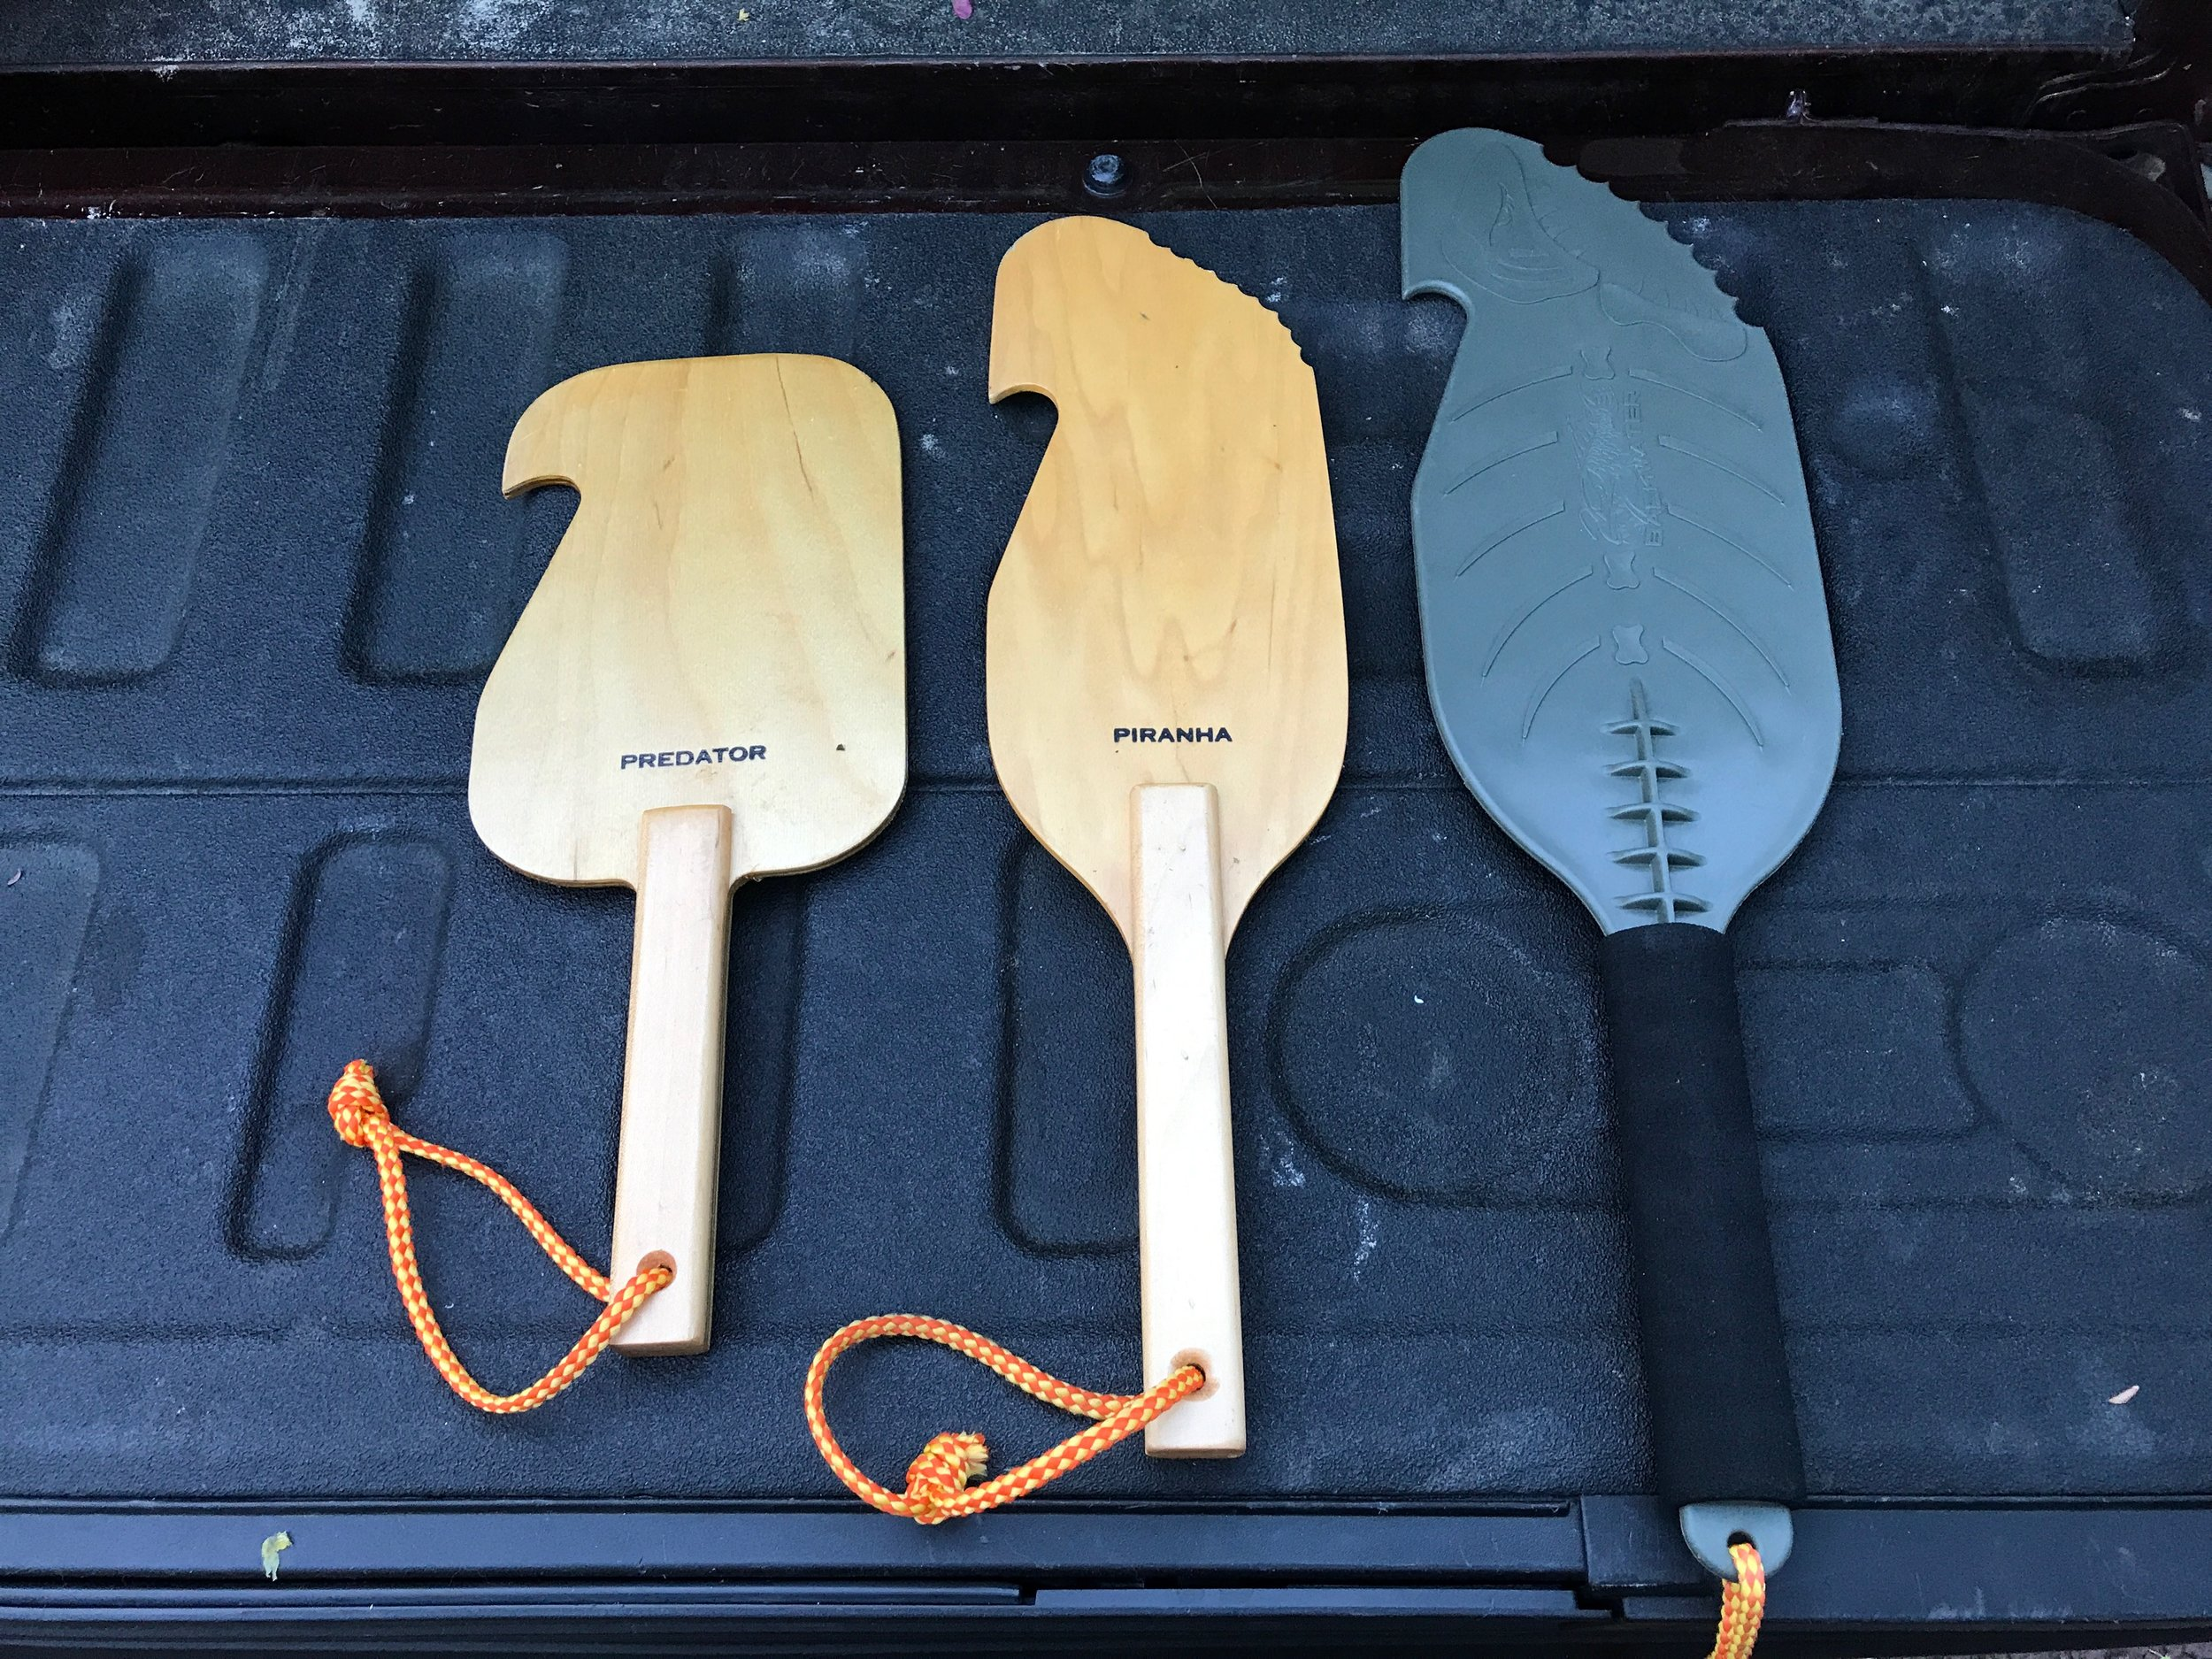 My collection of hand paddles.  From left to right the Predator, the Piranha, and the Assault had paddles.